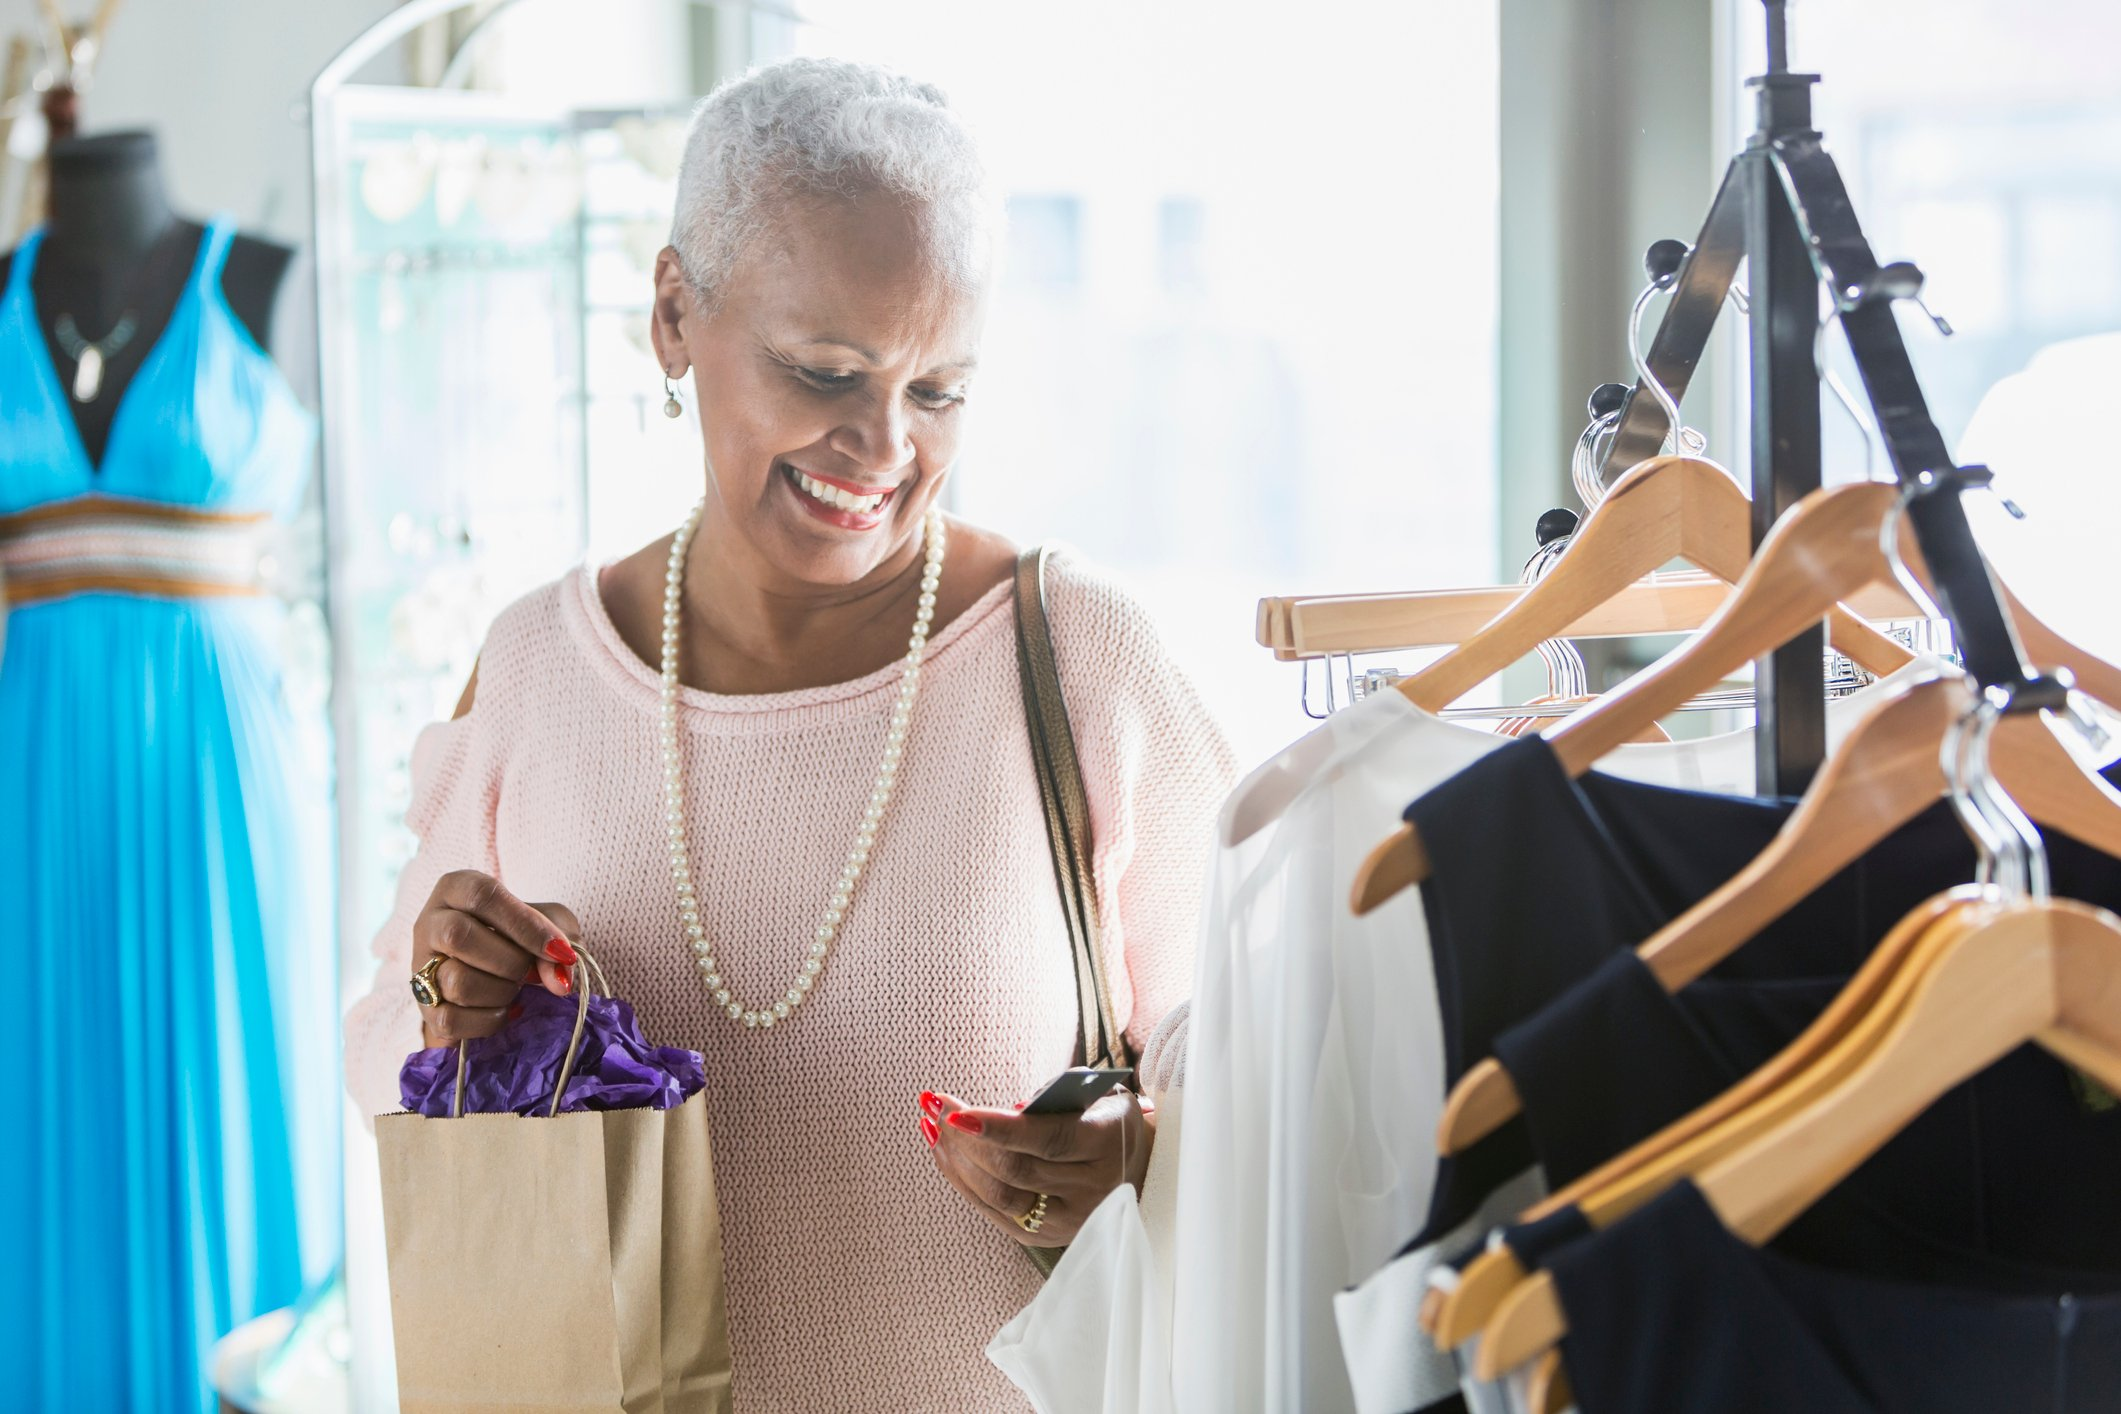 A senior African American woman shopping in a clothing store. She is standing by a rack of dresses on hangers, looking at a price tag, carrying a shopping bag.